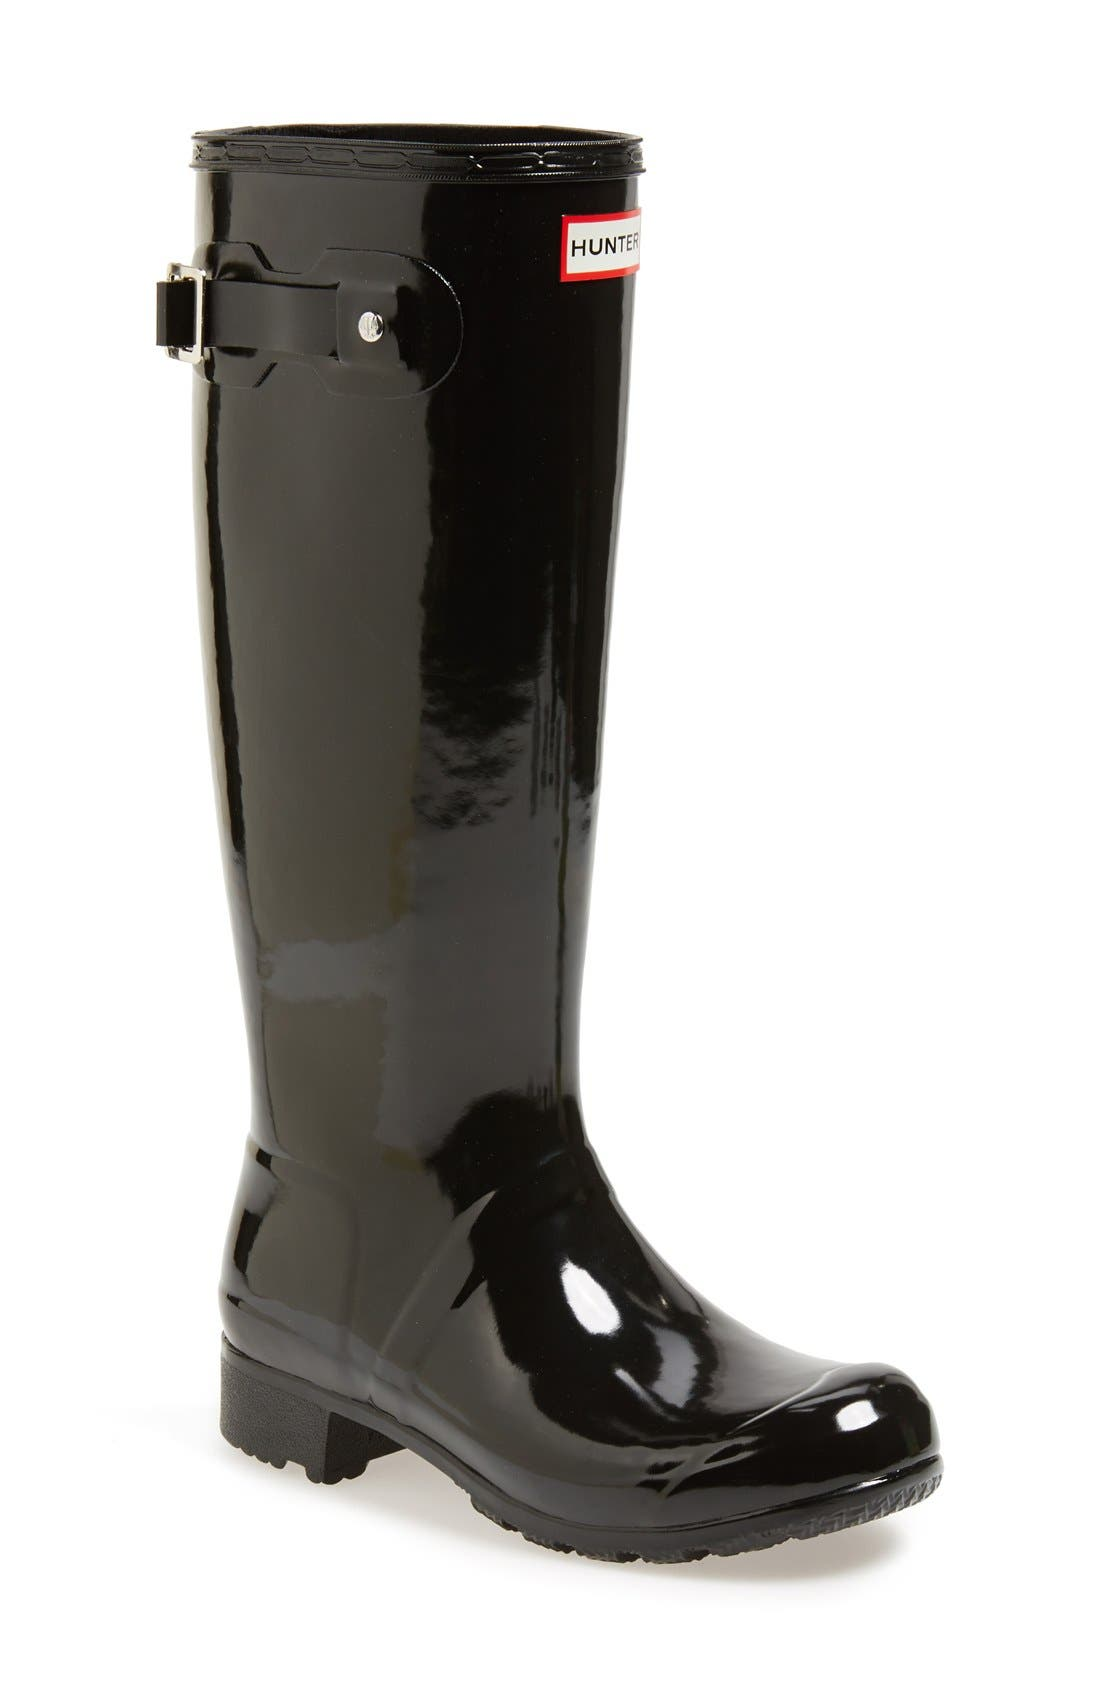 Alternate Image 1 Selected - Hunter Original Tour Gloss Packable Rain Boot (Women)